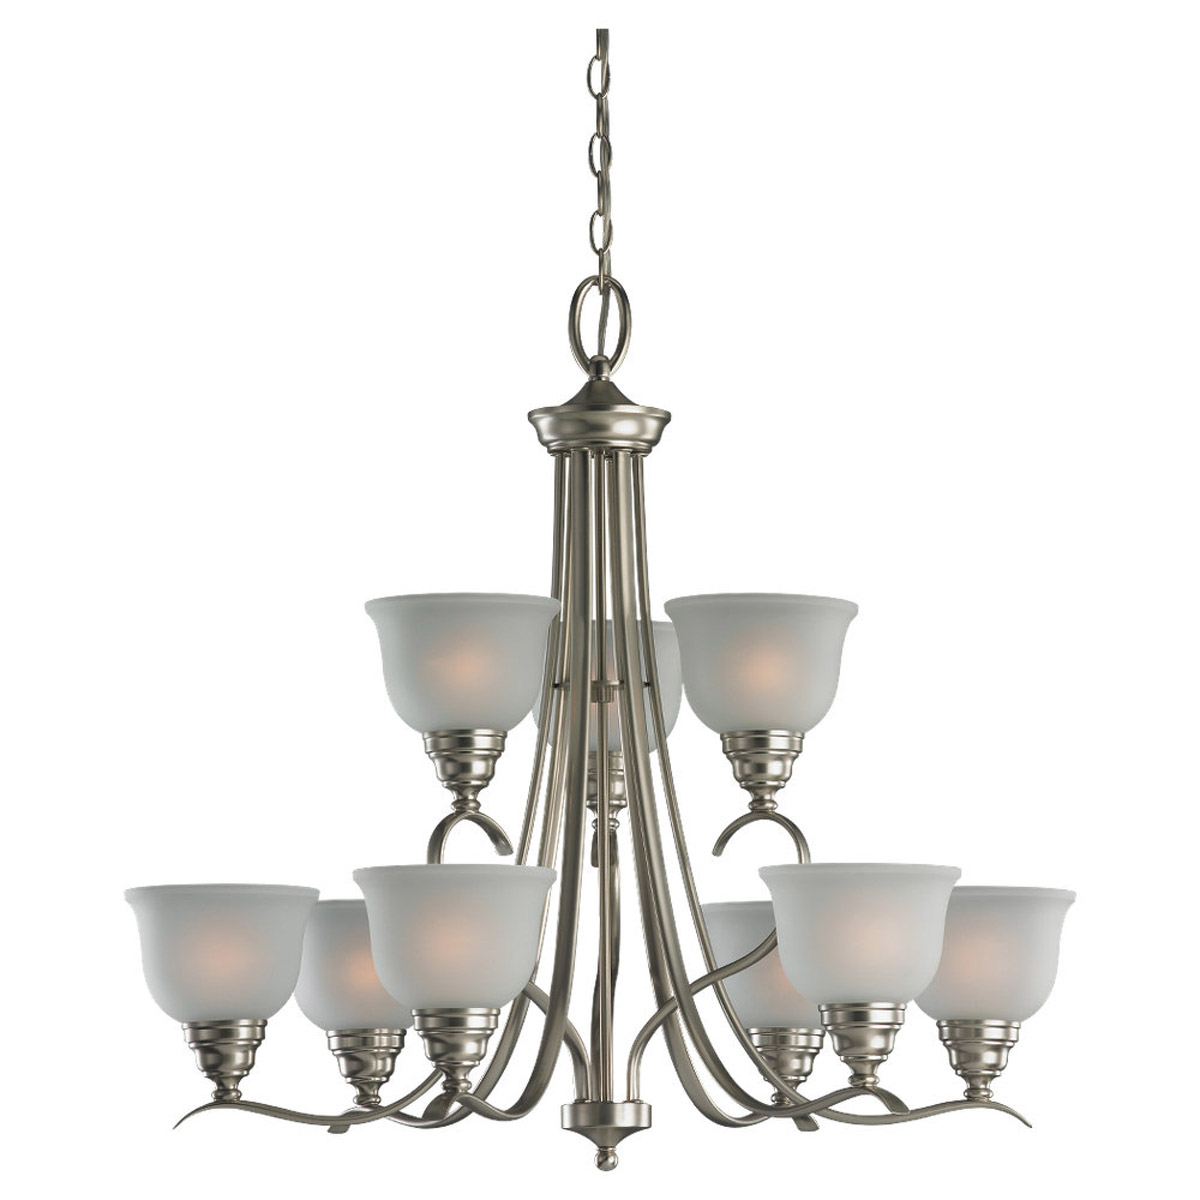 Sea Gull Lighting Wheaton 9 Light Chandelier in Brushed Nickel 31627BLE-962